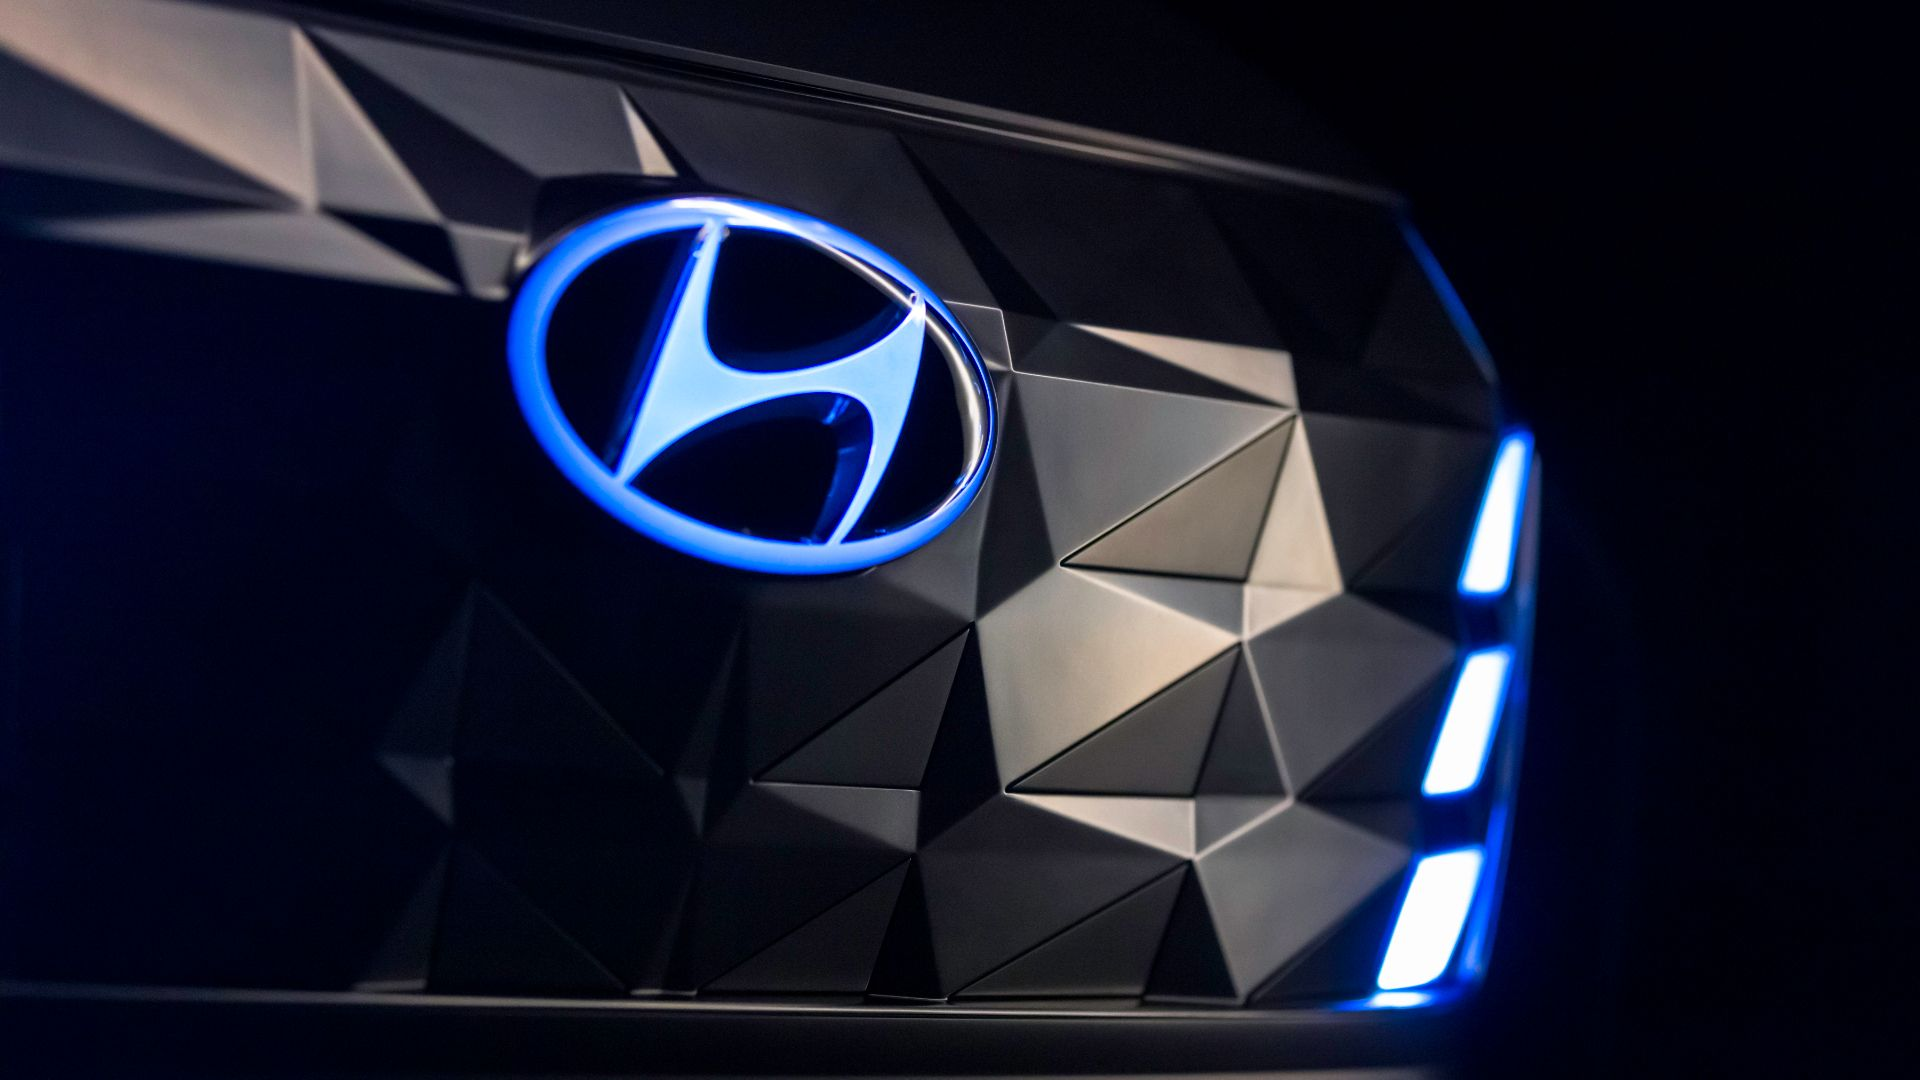 Hyundai Korean production suspended due to Coronavirus